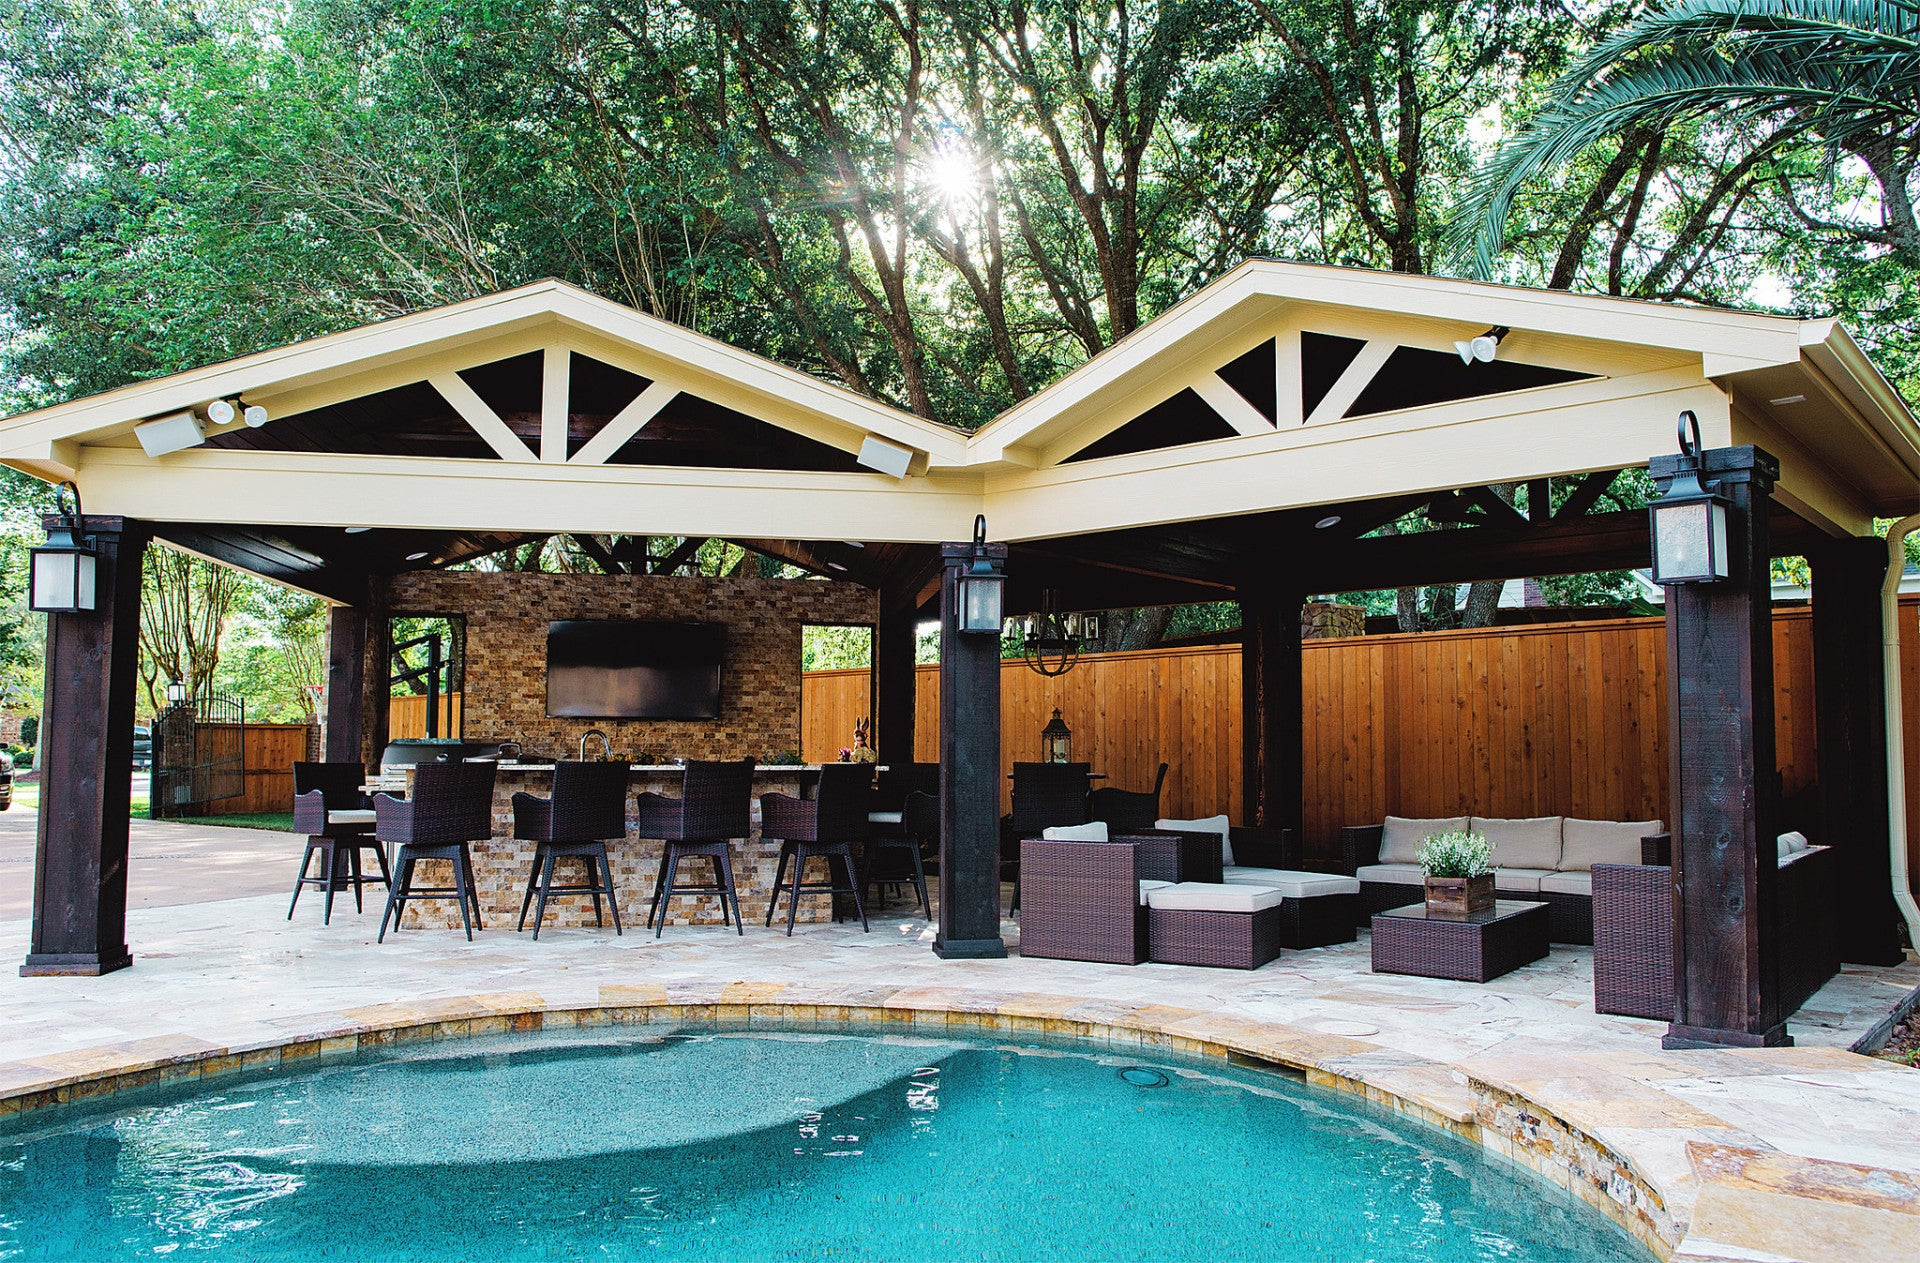 Pool Bathroom Ideas Patio Covers And Cabanas Backyard Retreats